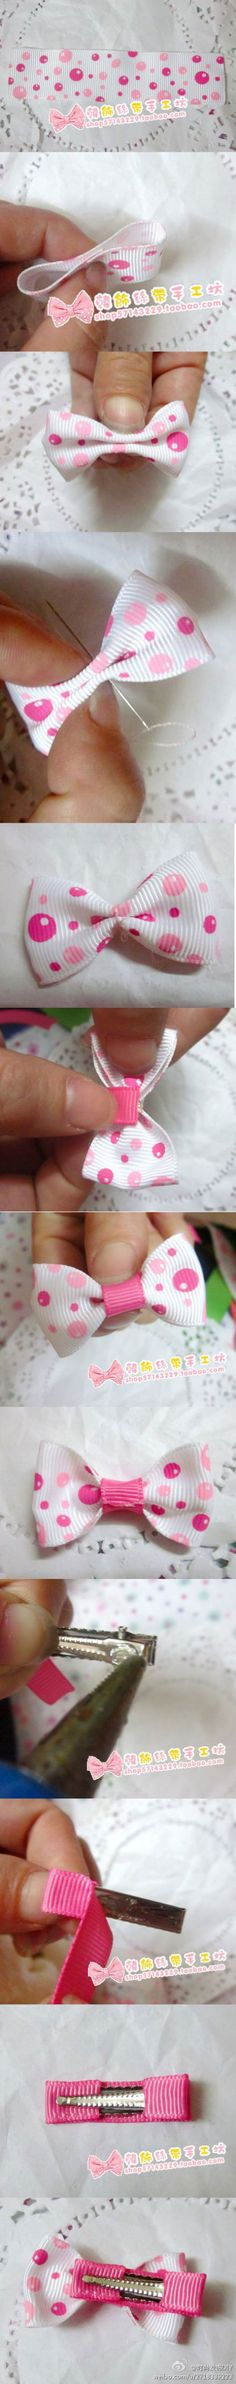 Small simple hair bow. I'm sure I could whip some of these up!